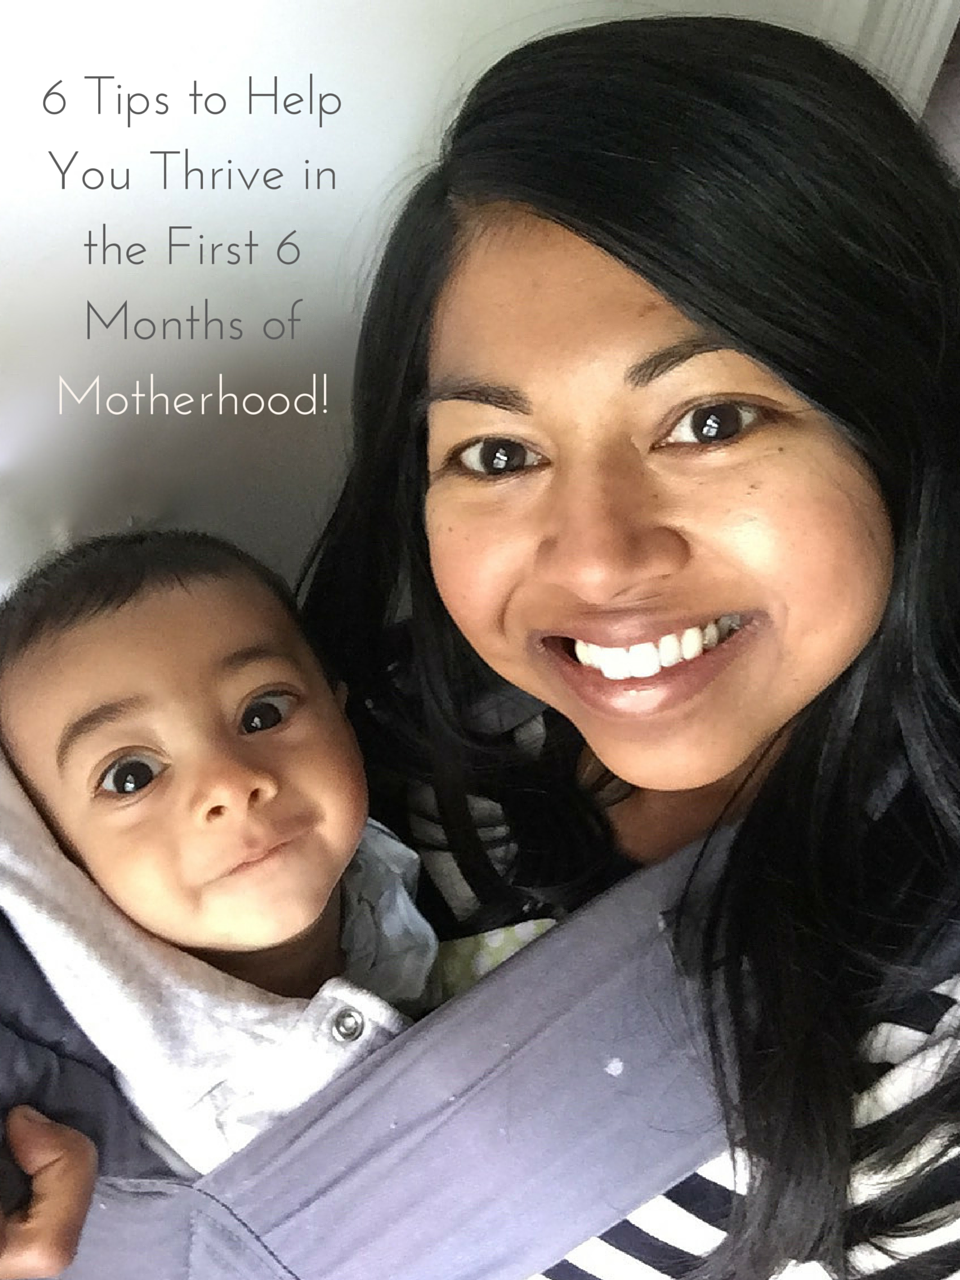 6 Tips to Help You Thrive in the First 6 Months of Motherhood!